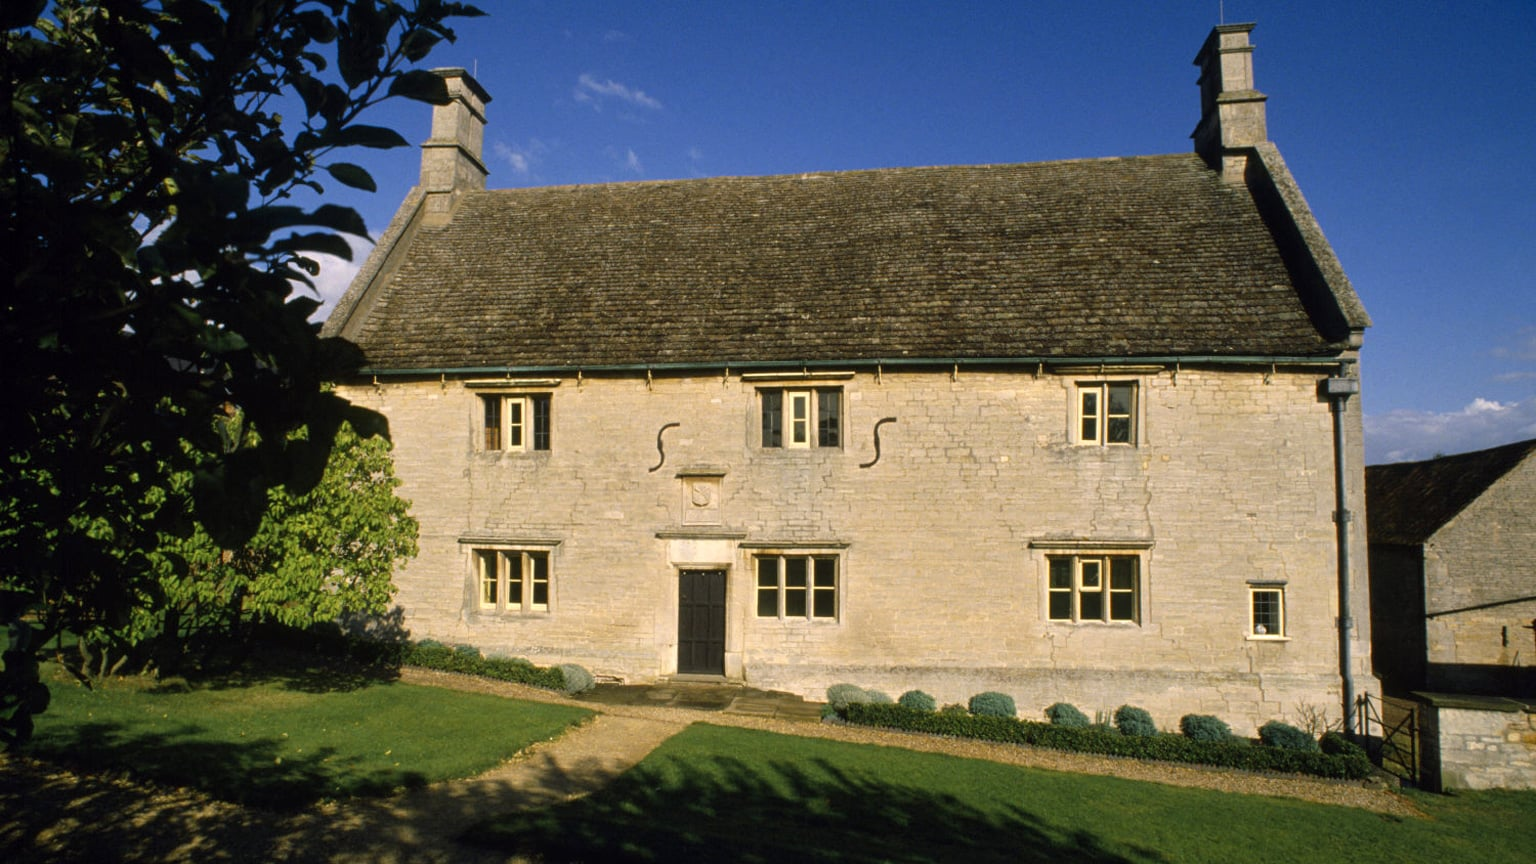 6. Woolsthorpe Manor, Lincolnshire - Free entry with National Art Pass